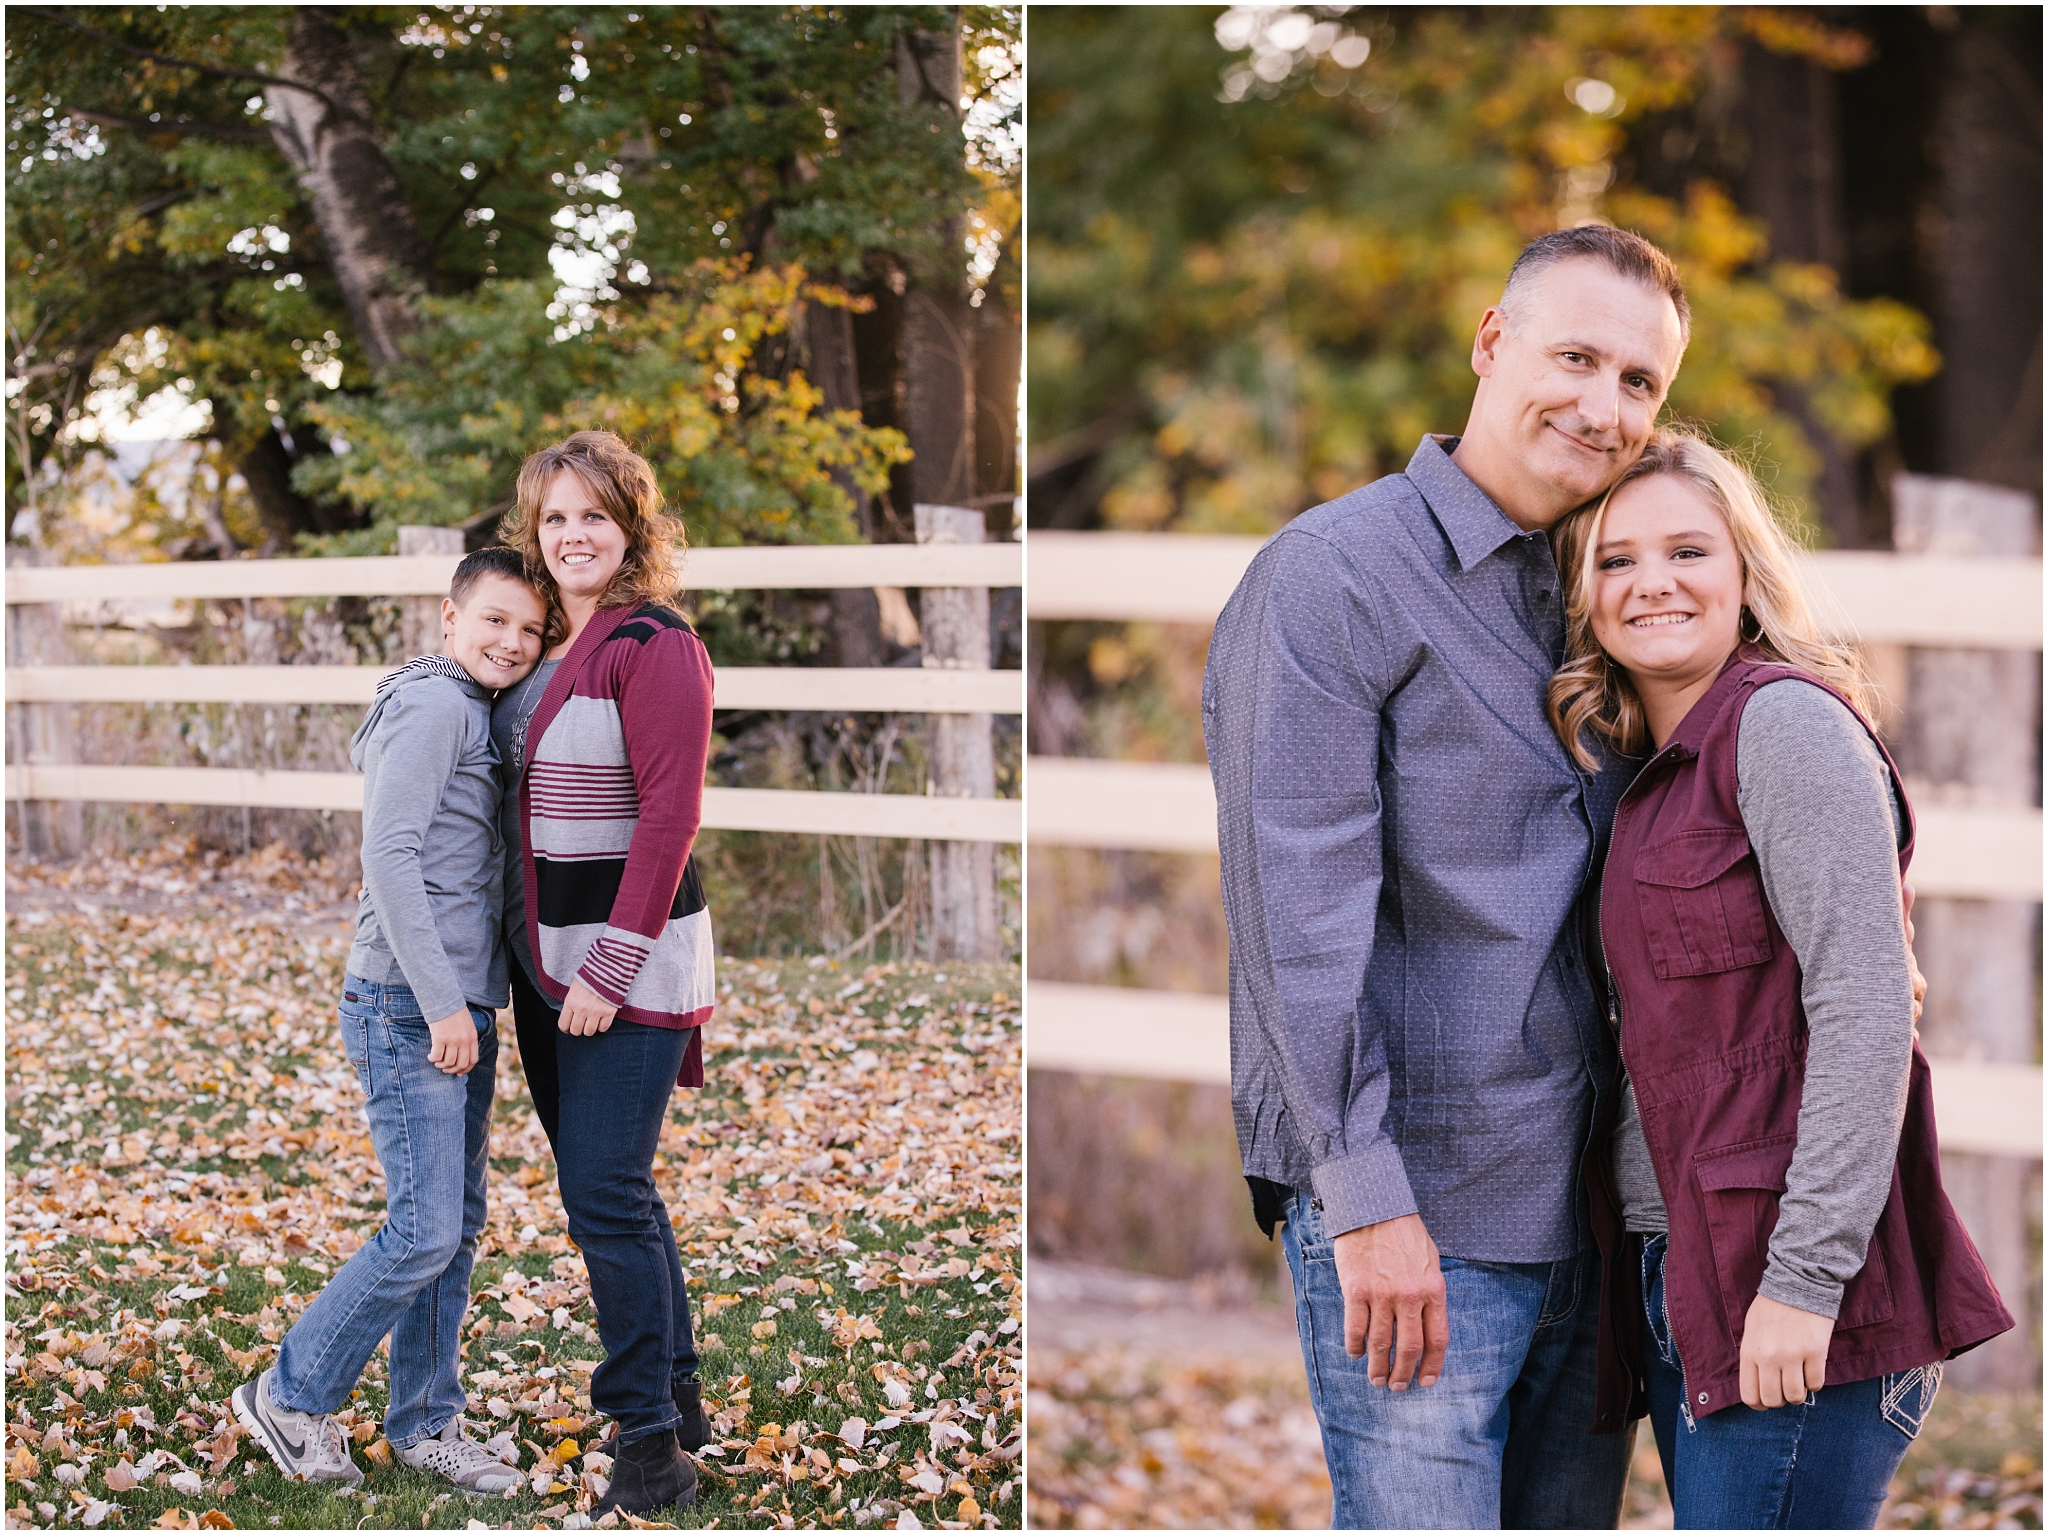 Fielding-57_Lizzie-B-Imagery-Utah-Family-Photographer-Central-Utah-Park-City-Salt-Lake-City.jpg